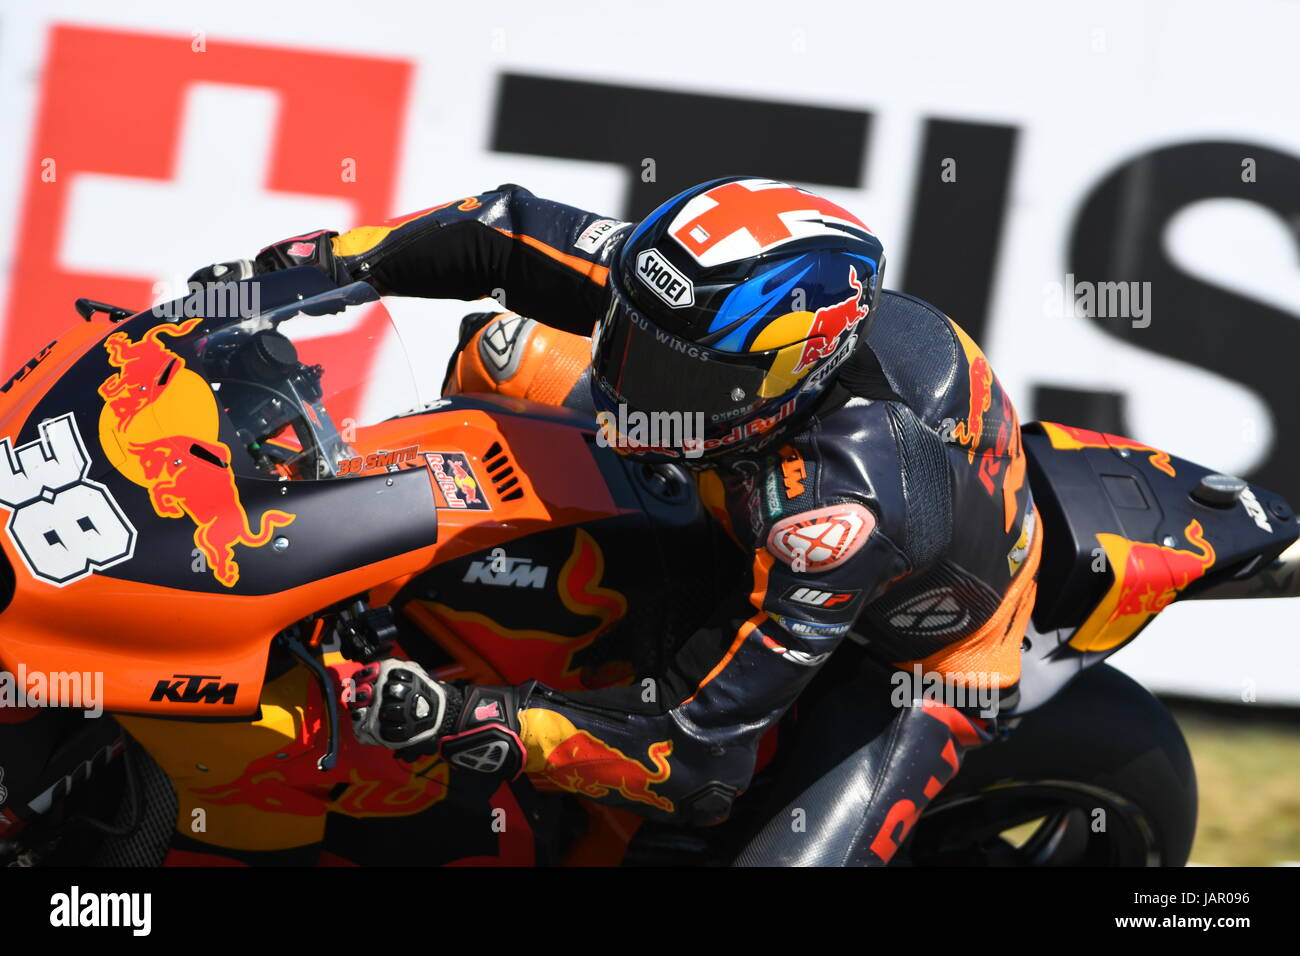 Mugello - ITALY, JUNE 3: British KTM MotoGP rider Bradley Smith at 2017 OAKLEY GP of Italy of MotoGP Mugello on - Stock Image